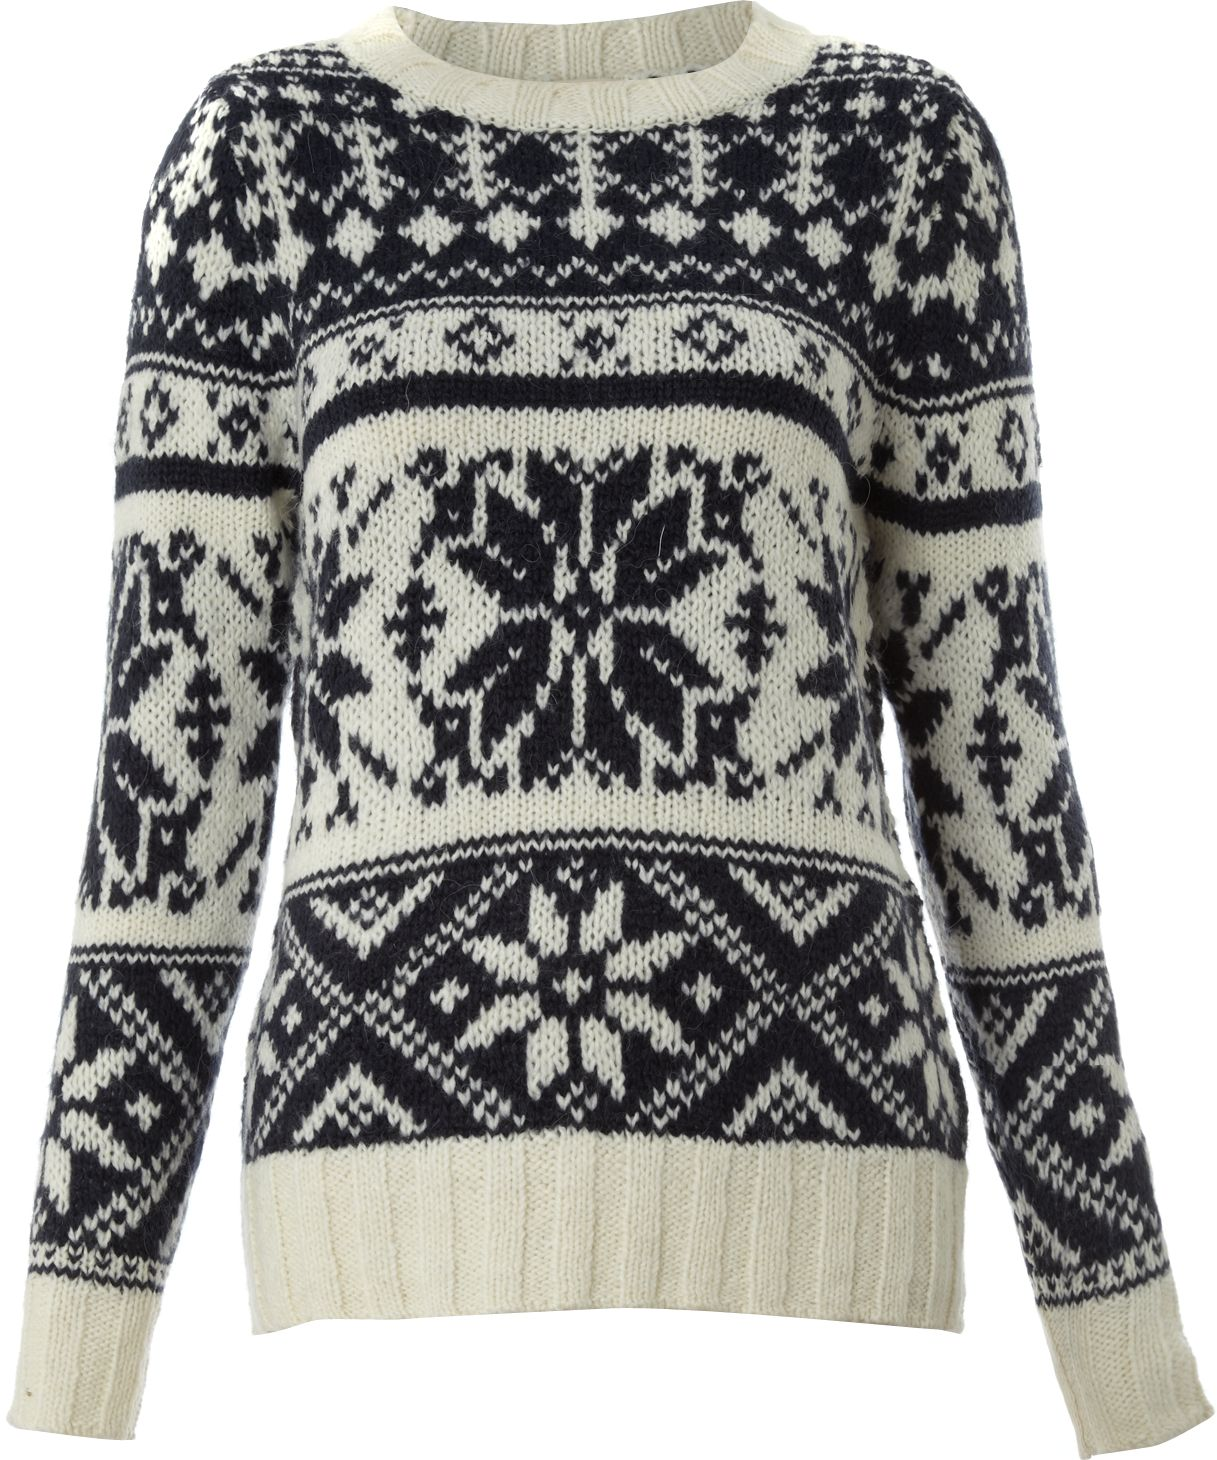 Ladies knitted snowflake jumper